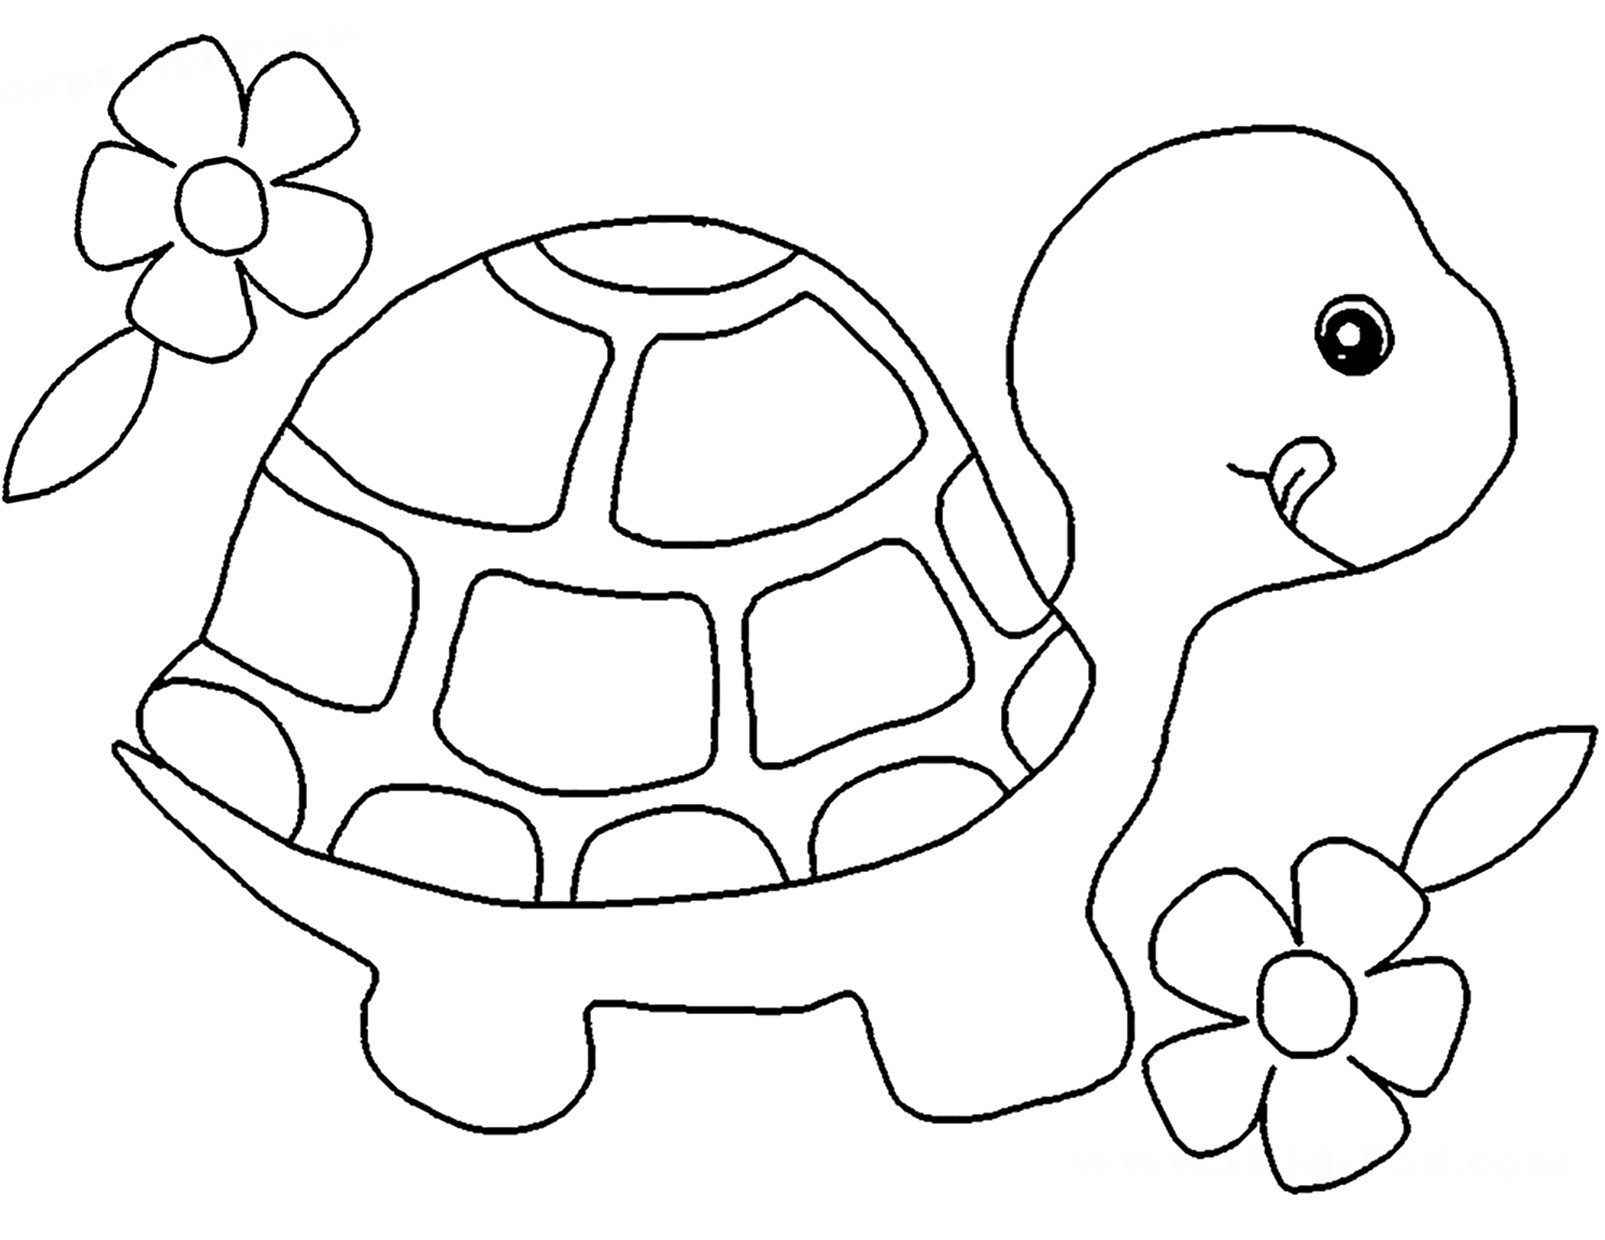 turtle printable coloring pages turtle cartoon coloring page a free ocean coloring printable turtle coloring printable pages